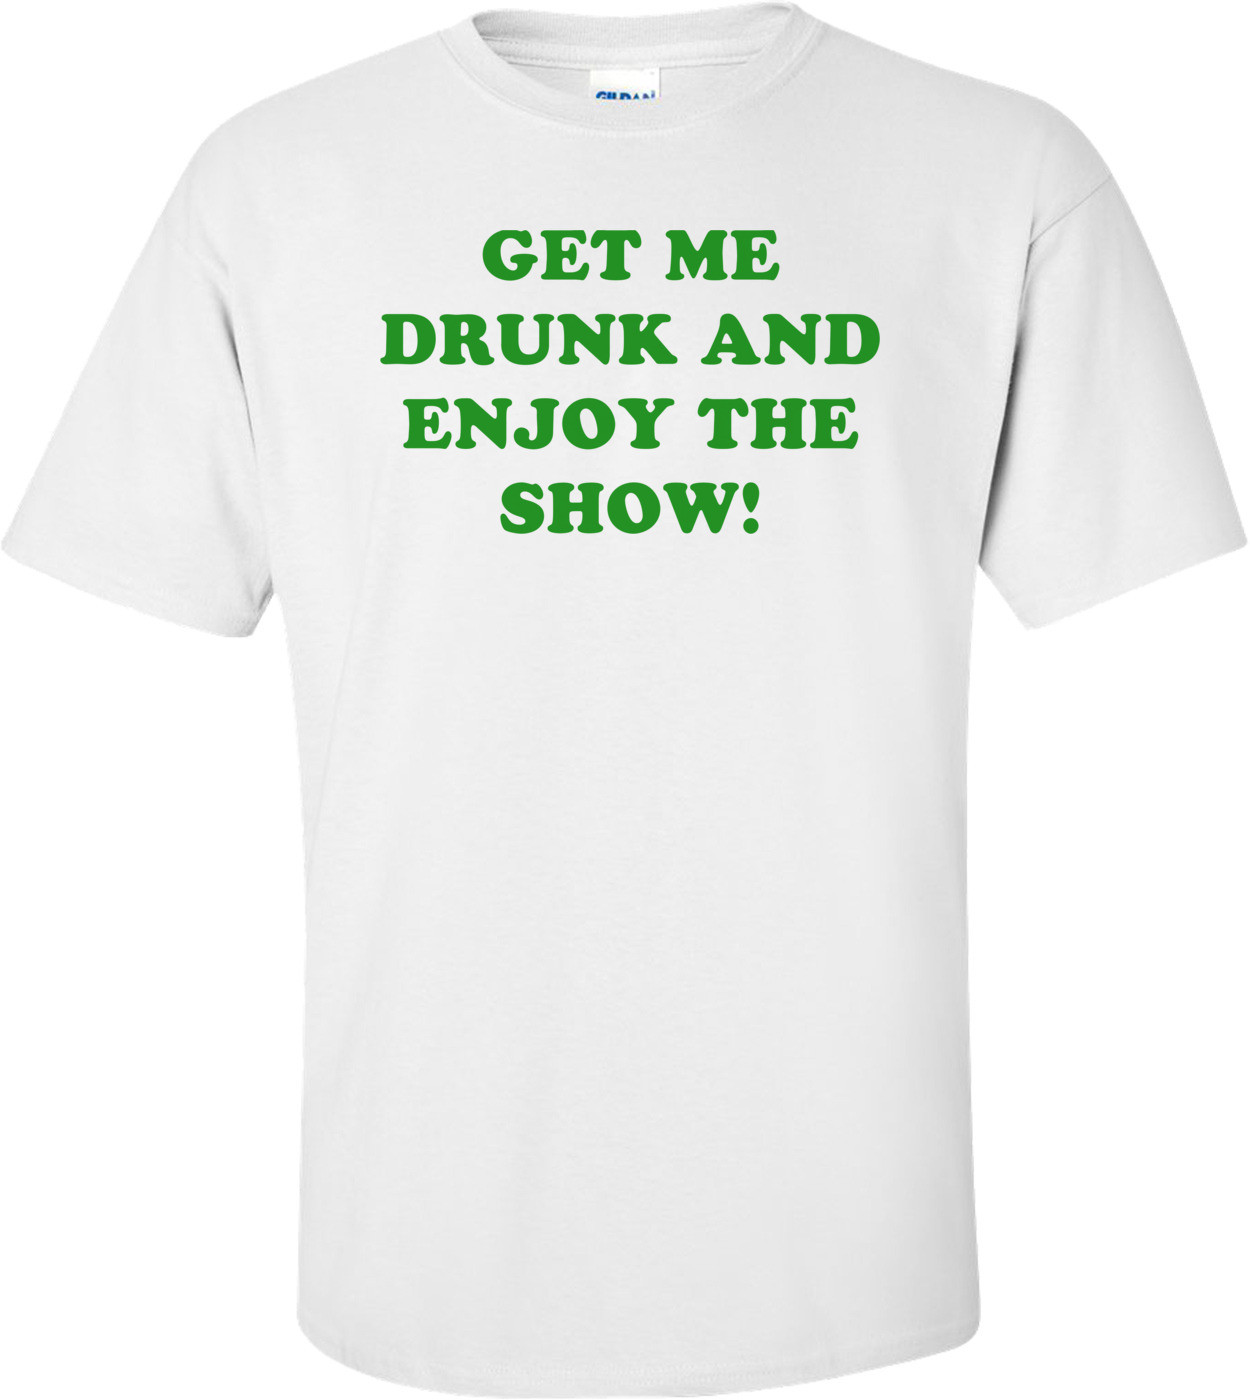 GET ME DRUNK AND ENJOY THE SHOW! Shirt